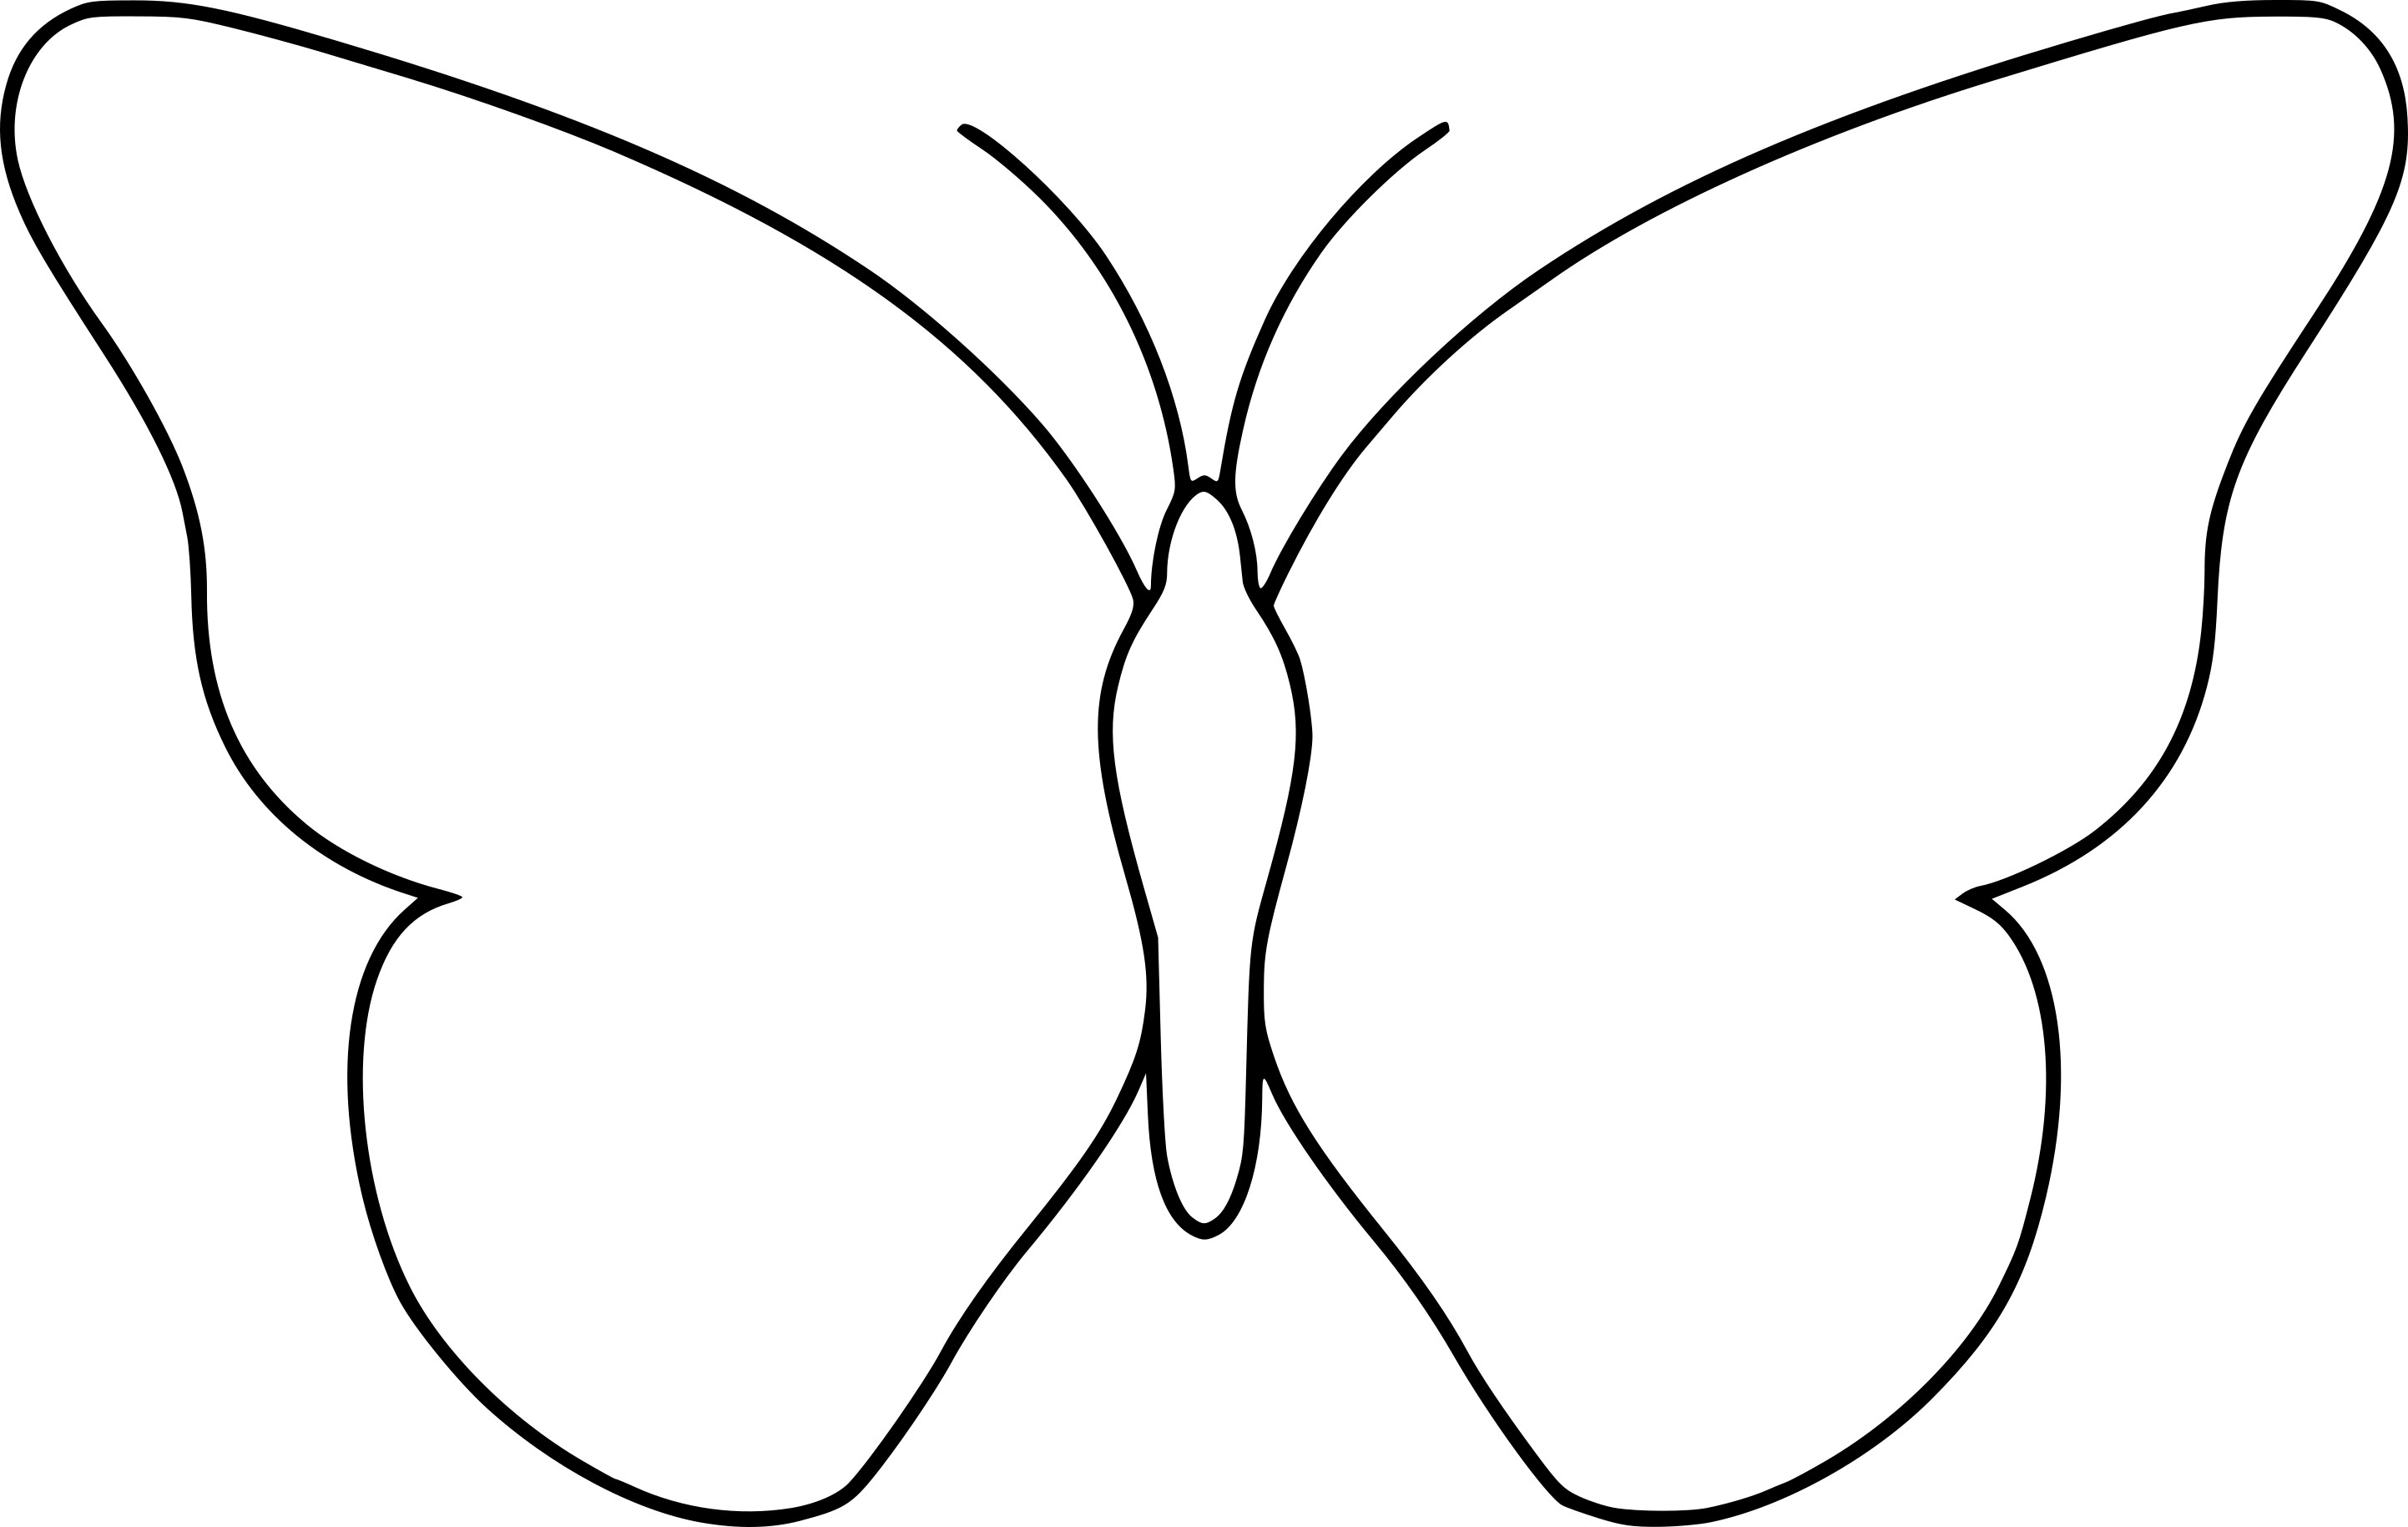 Coloriage papillon simple imprimer sur coloriages info - Coloriage de papillon ...